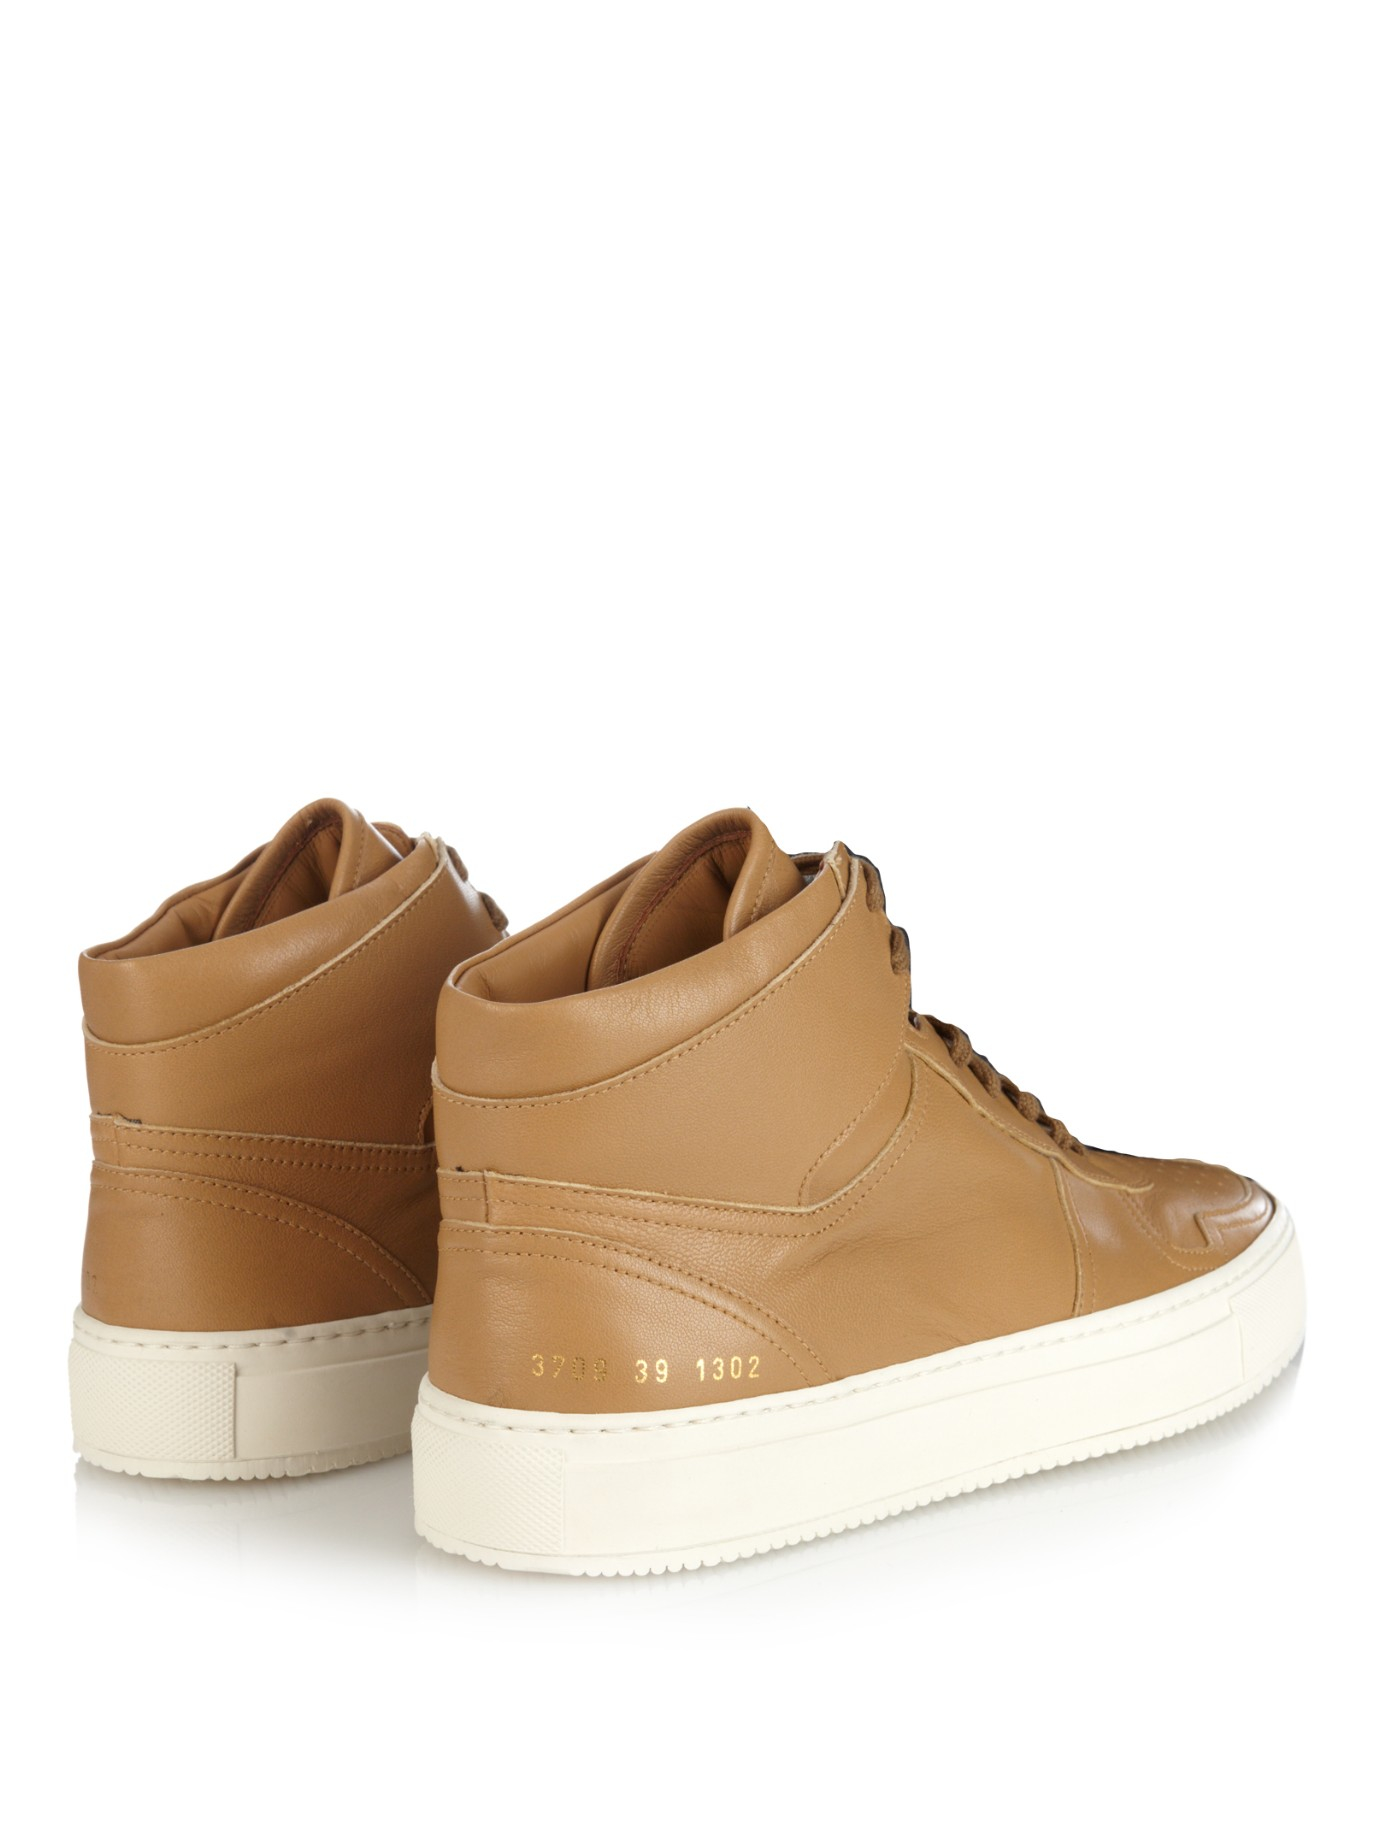 lyst common projects b ball leather high top sneakers in brown. Black Bedroom Furniture Sets. Home Design Ideas